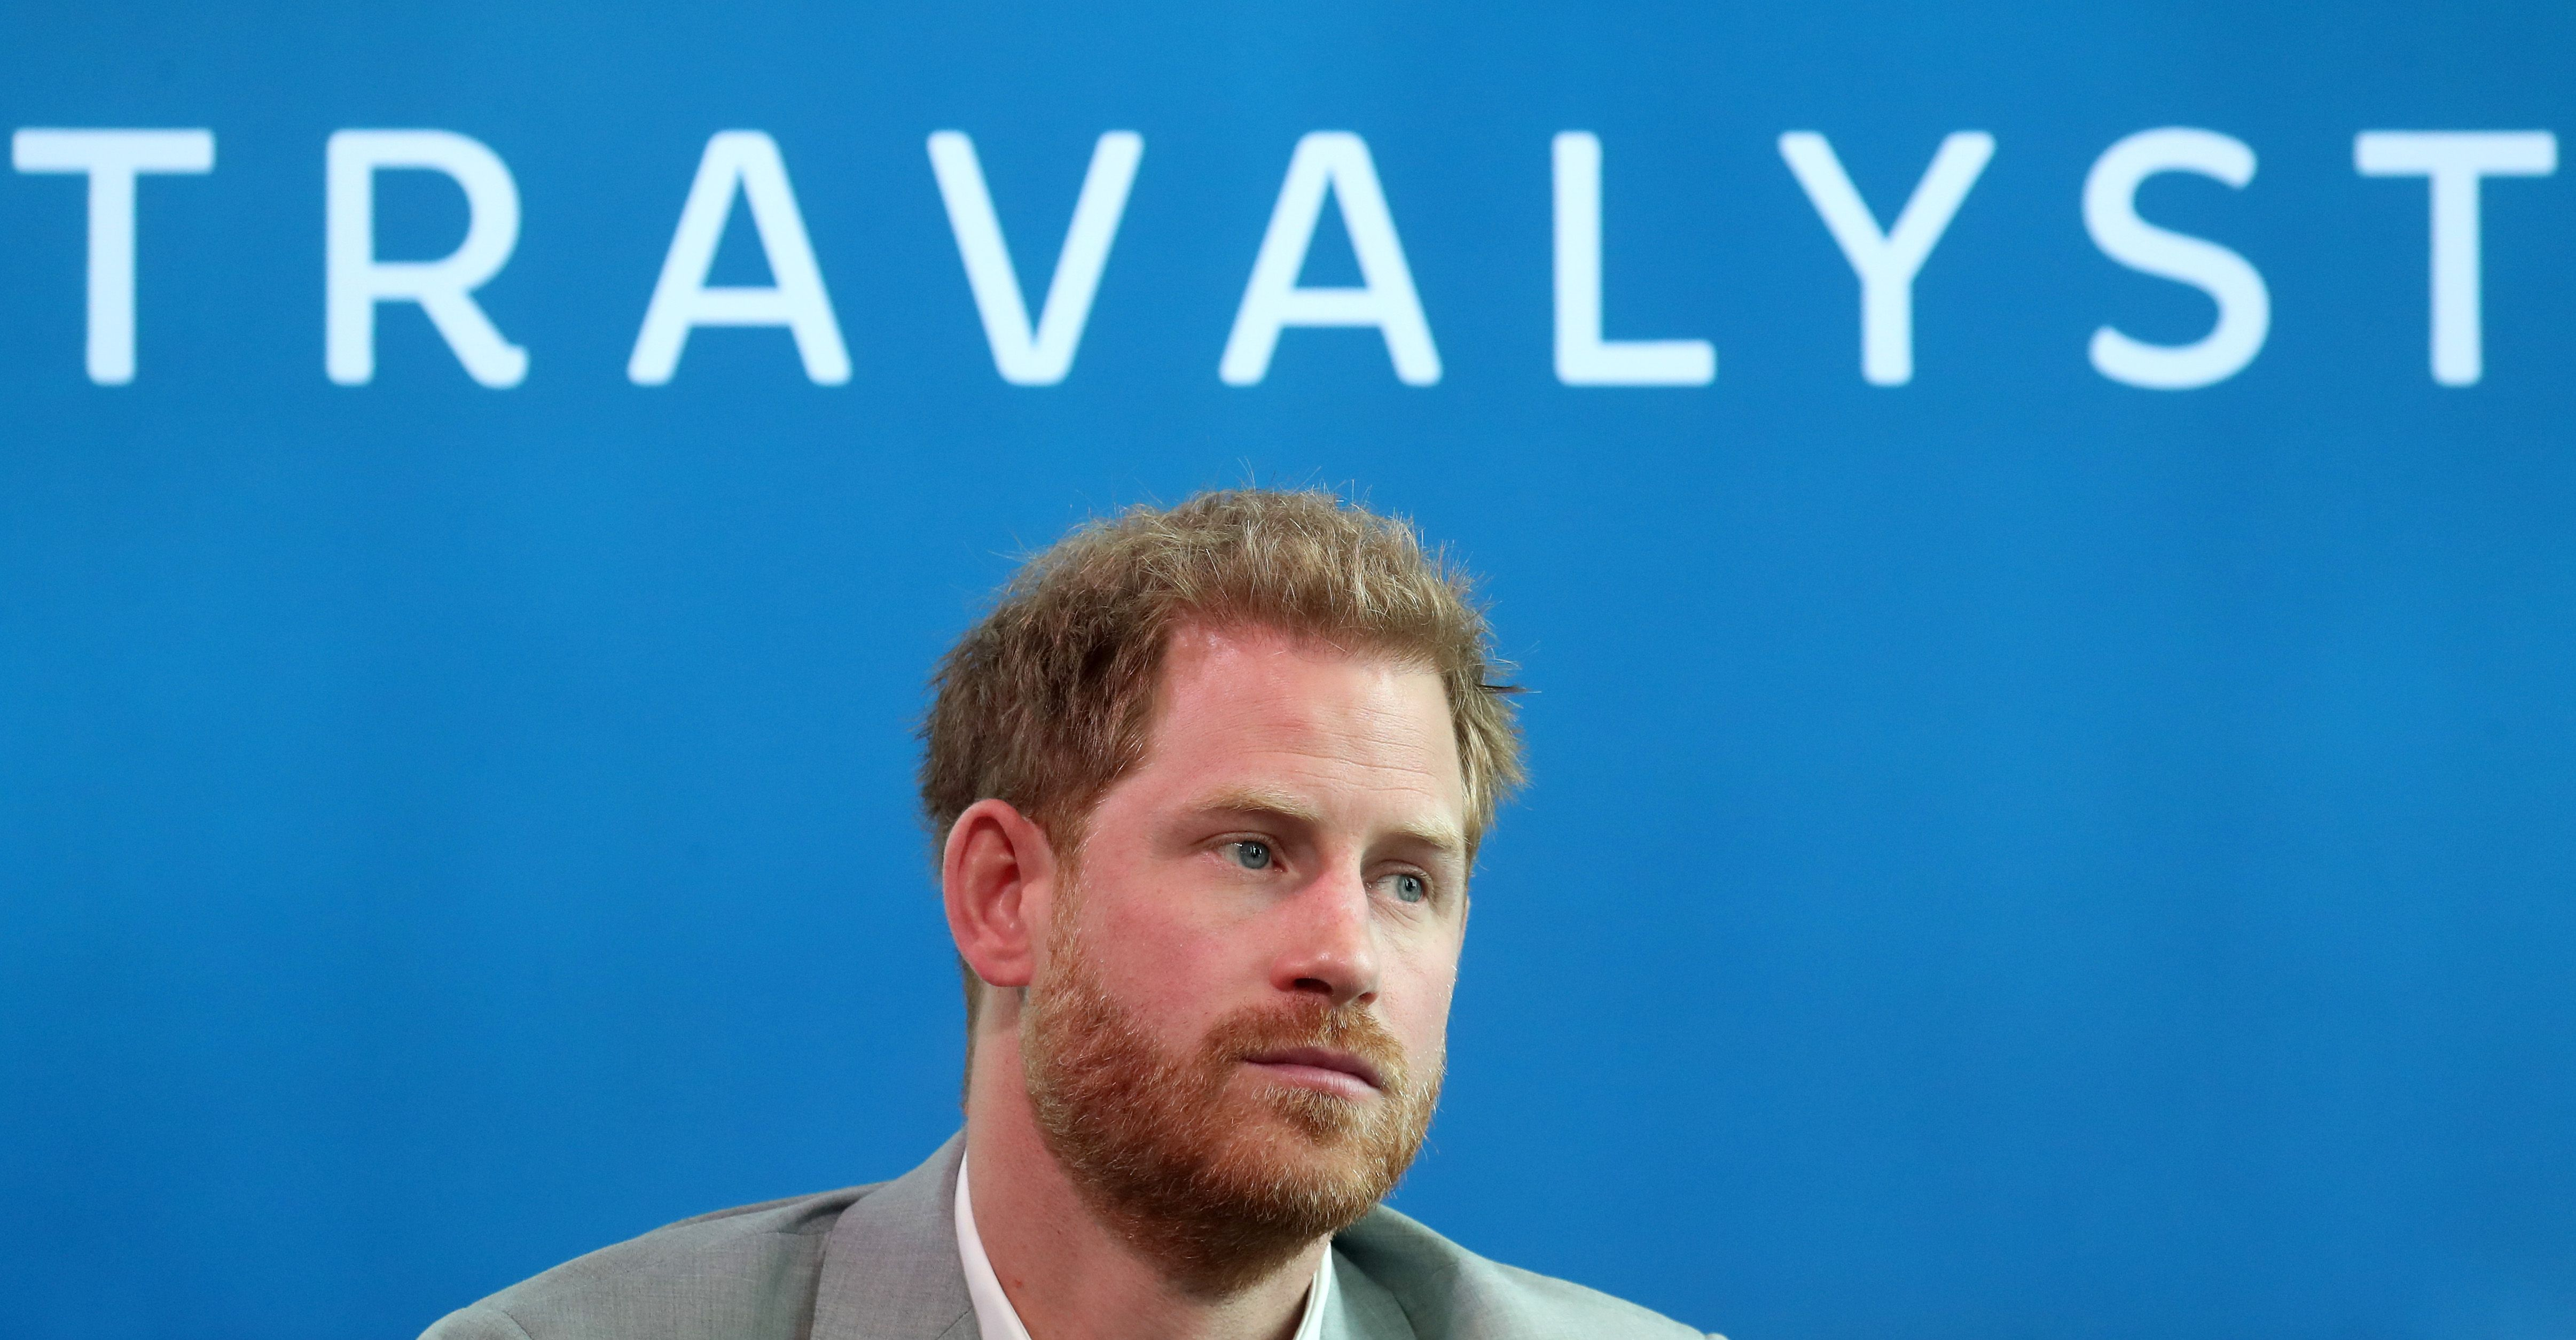 Why Prince Harry's New Sustainable Travel Initiative Is Exactly What the Travel Industry Needs